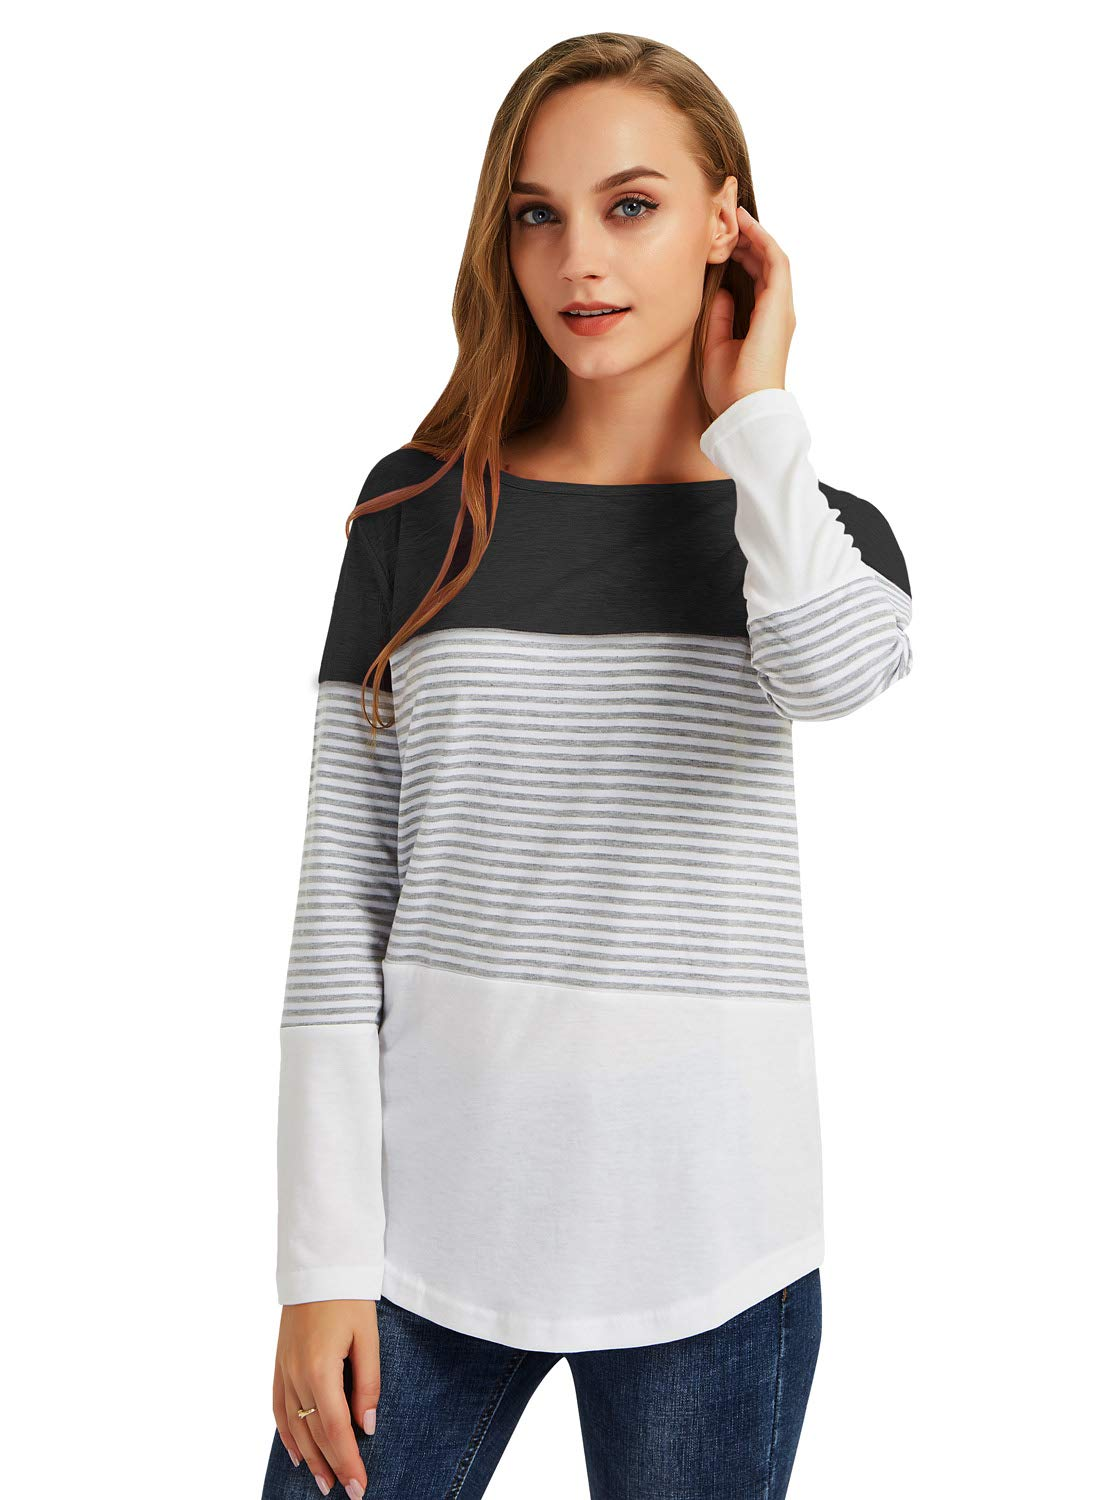 Gititlys Loose T-Shirts for Women, Casual Long Sleeve Sweatshirts Round Neck Shirts for Women, Lightweight Striped Sleeve Tops Blouses for Women M